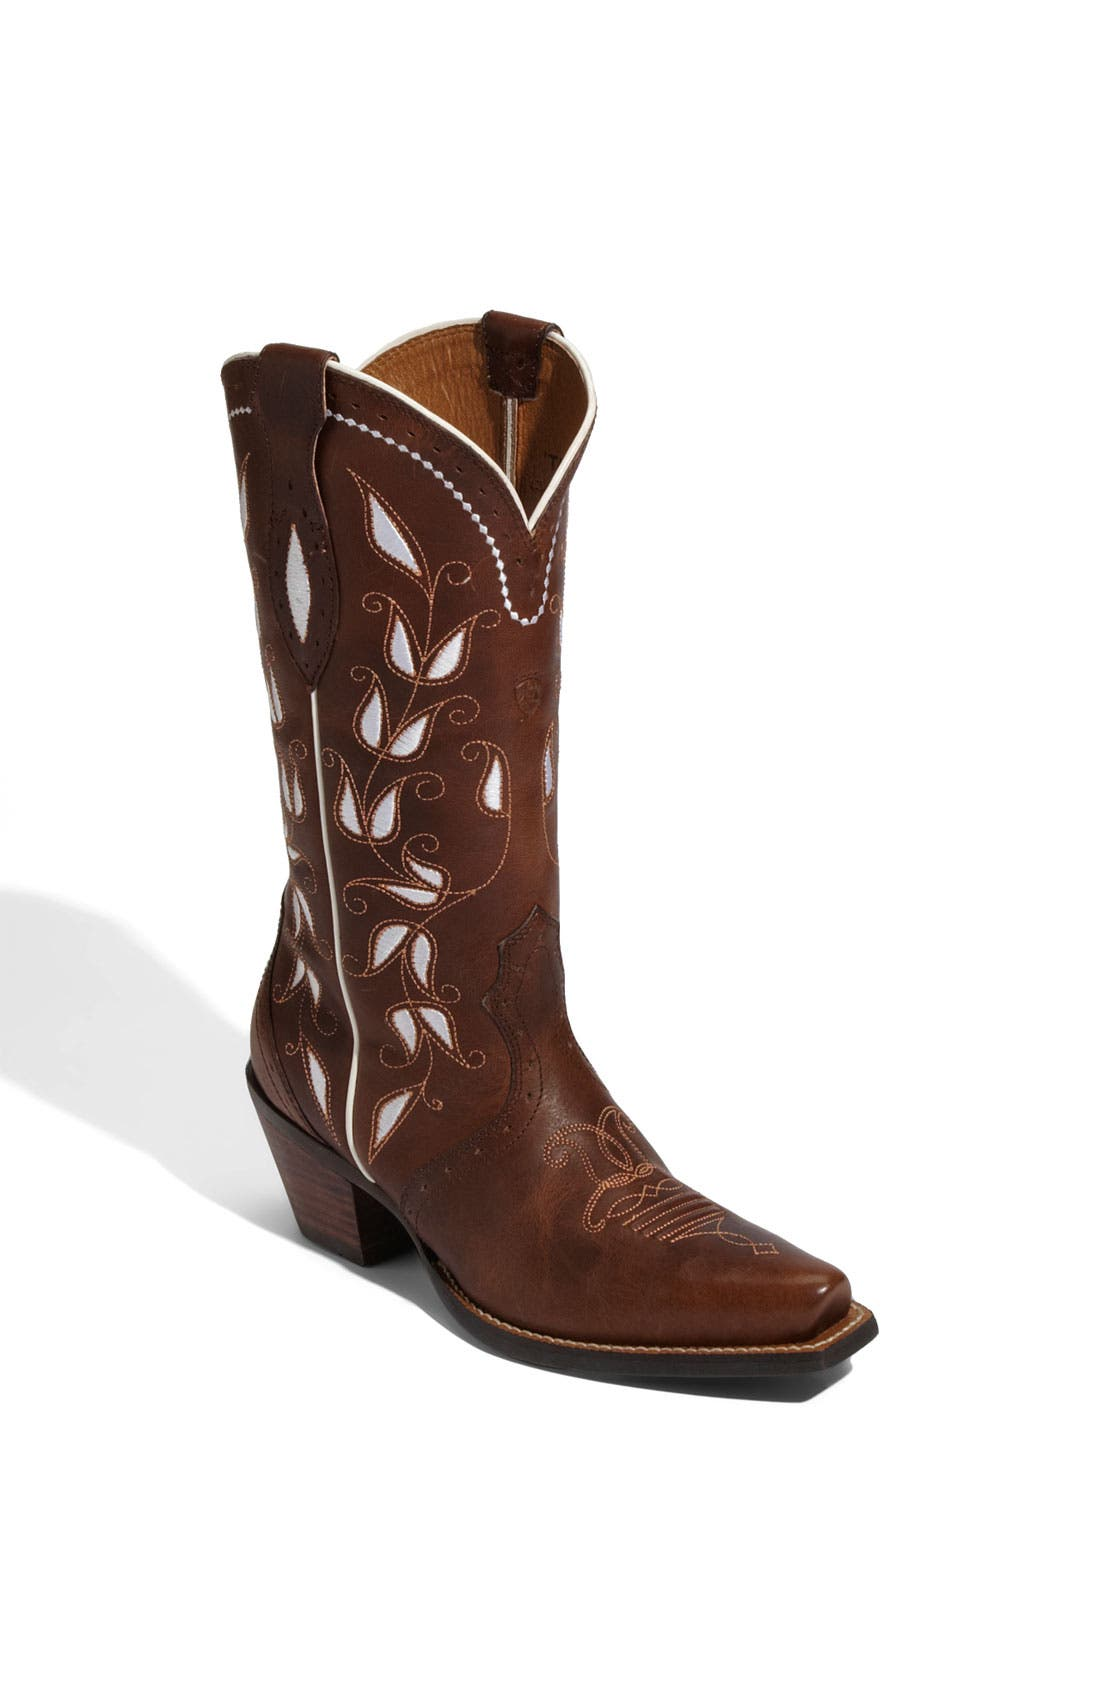 Alternate Image 1 Selected - Ariat 'Sonora' Boot (Online Only)